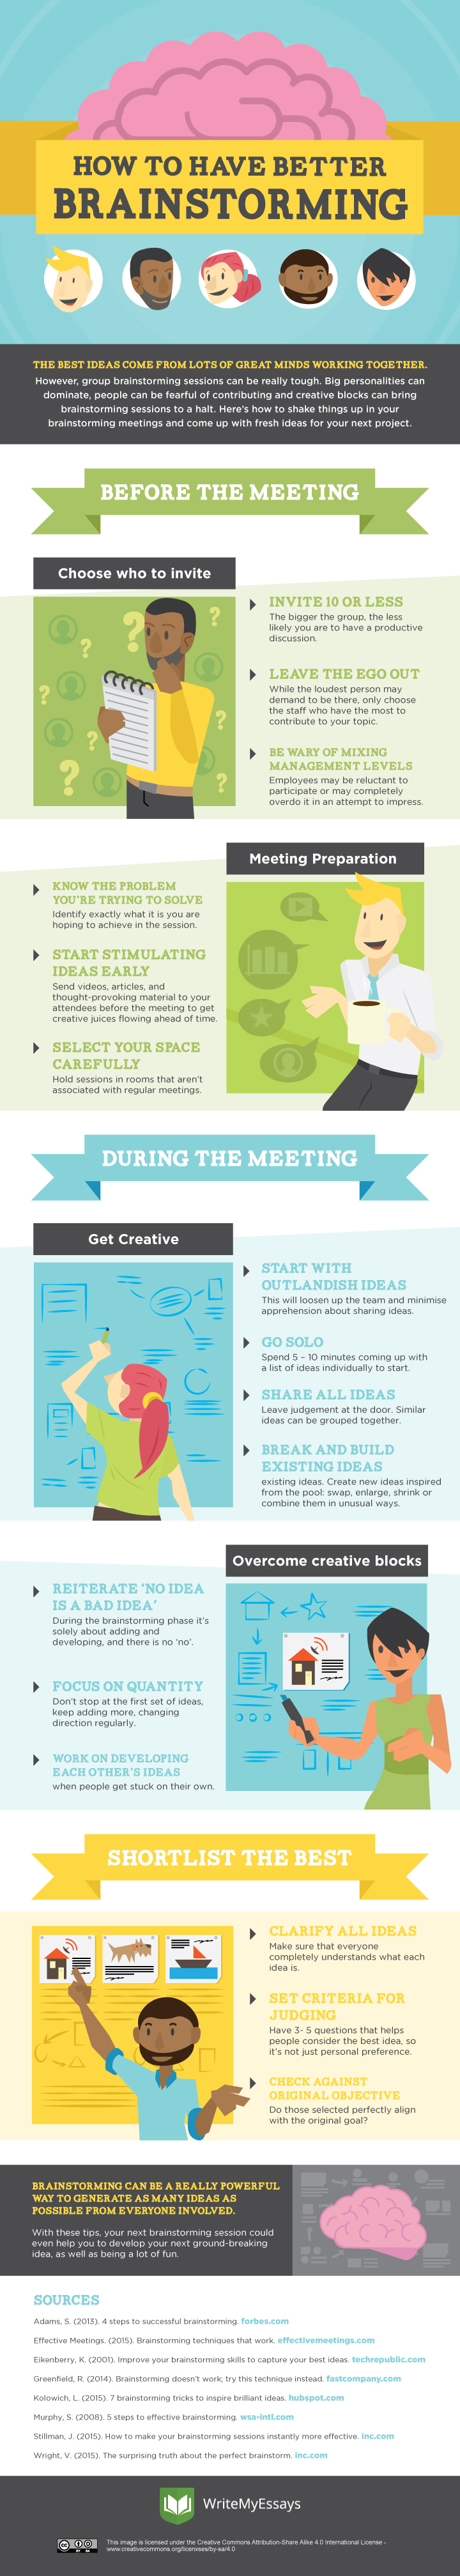 how-to-have-better-brainstorming